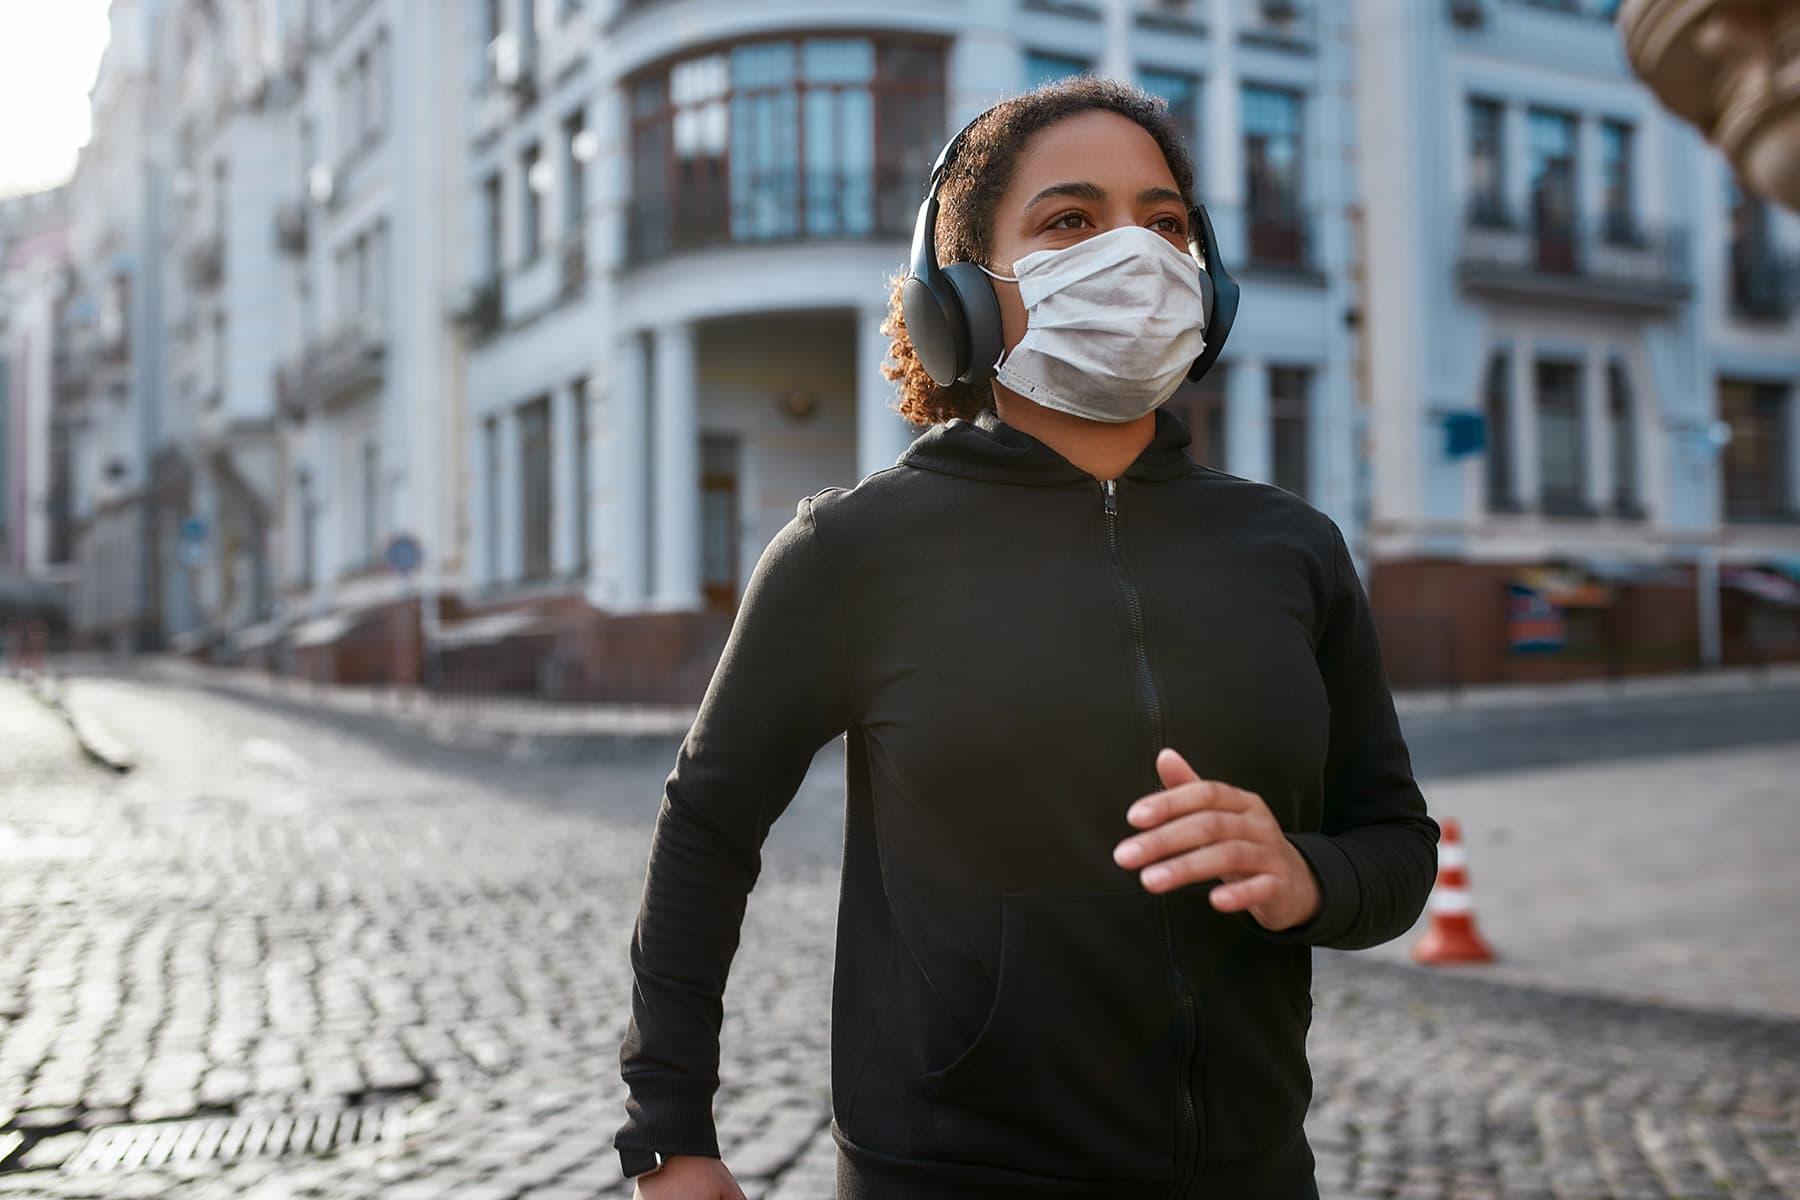 photo of woman exercising with mask on